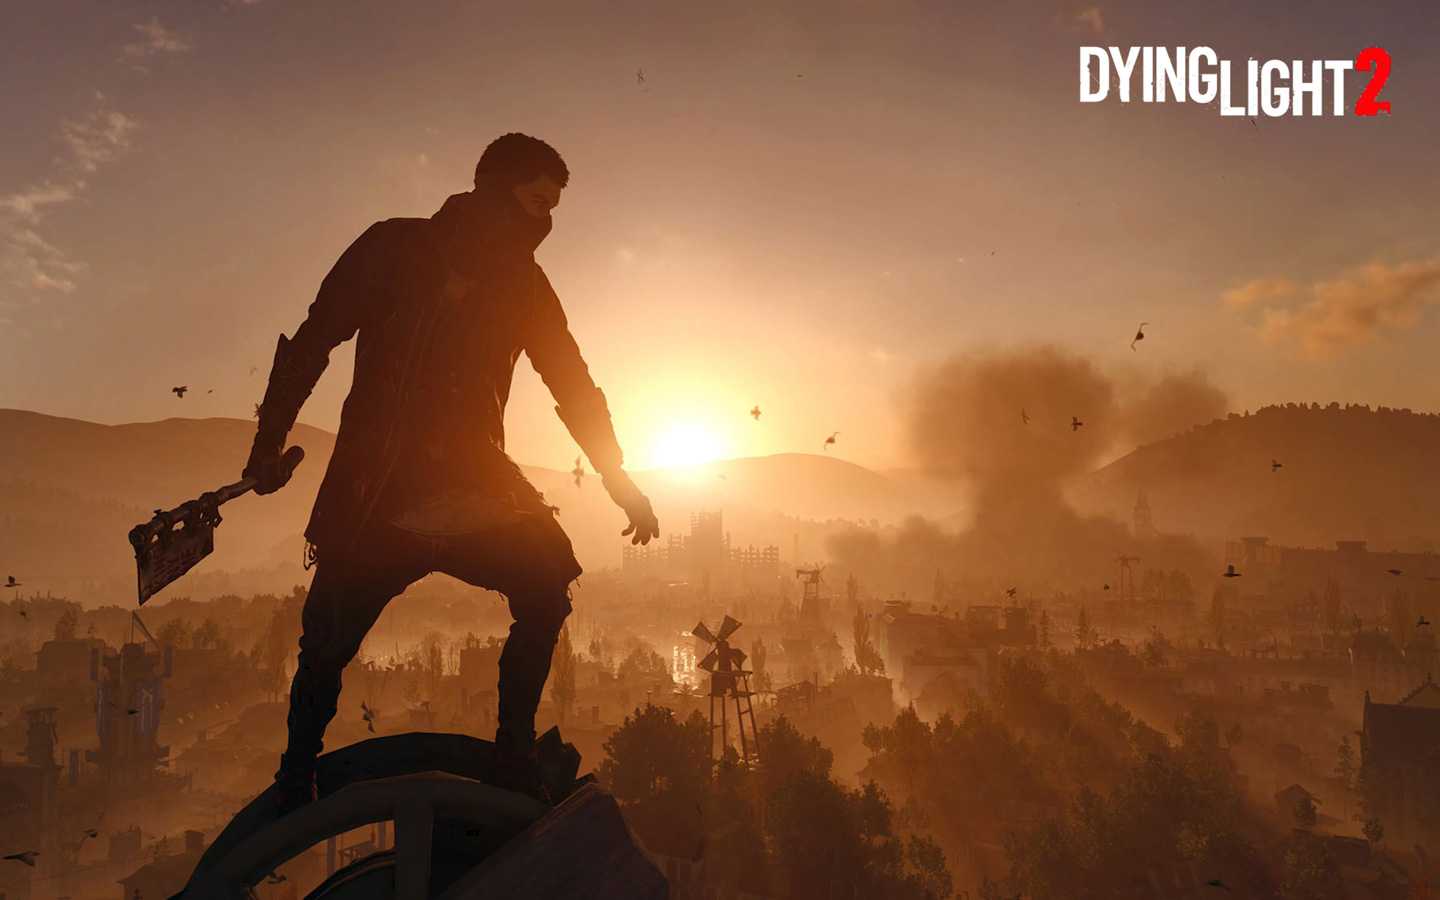 Free Dying Light 2 Wallpaper in 1440x900